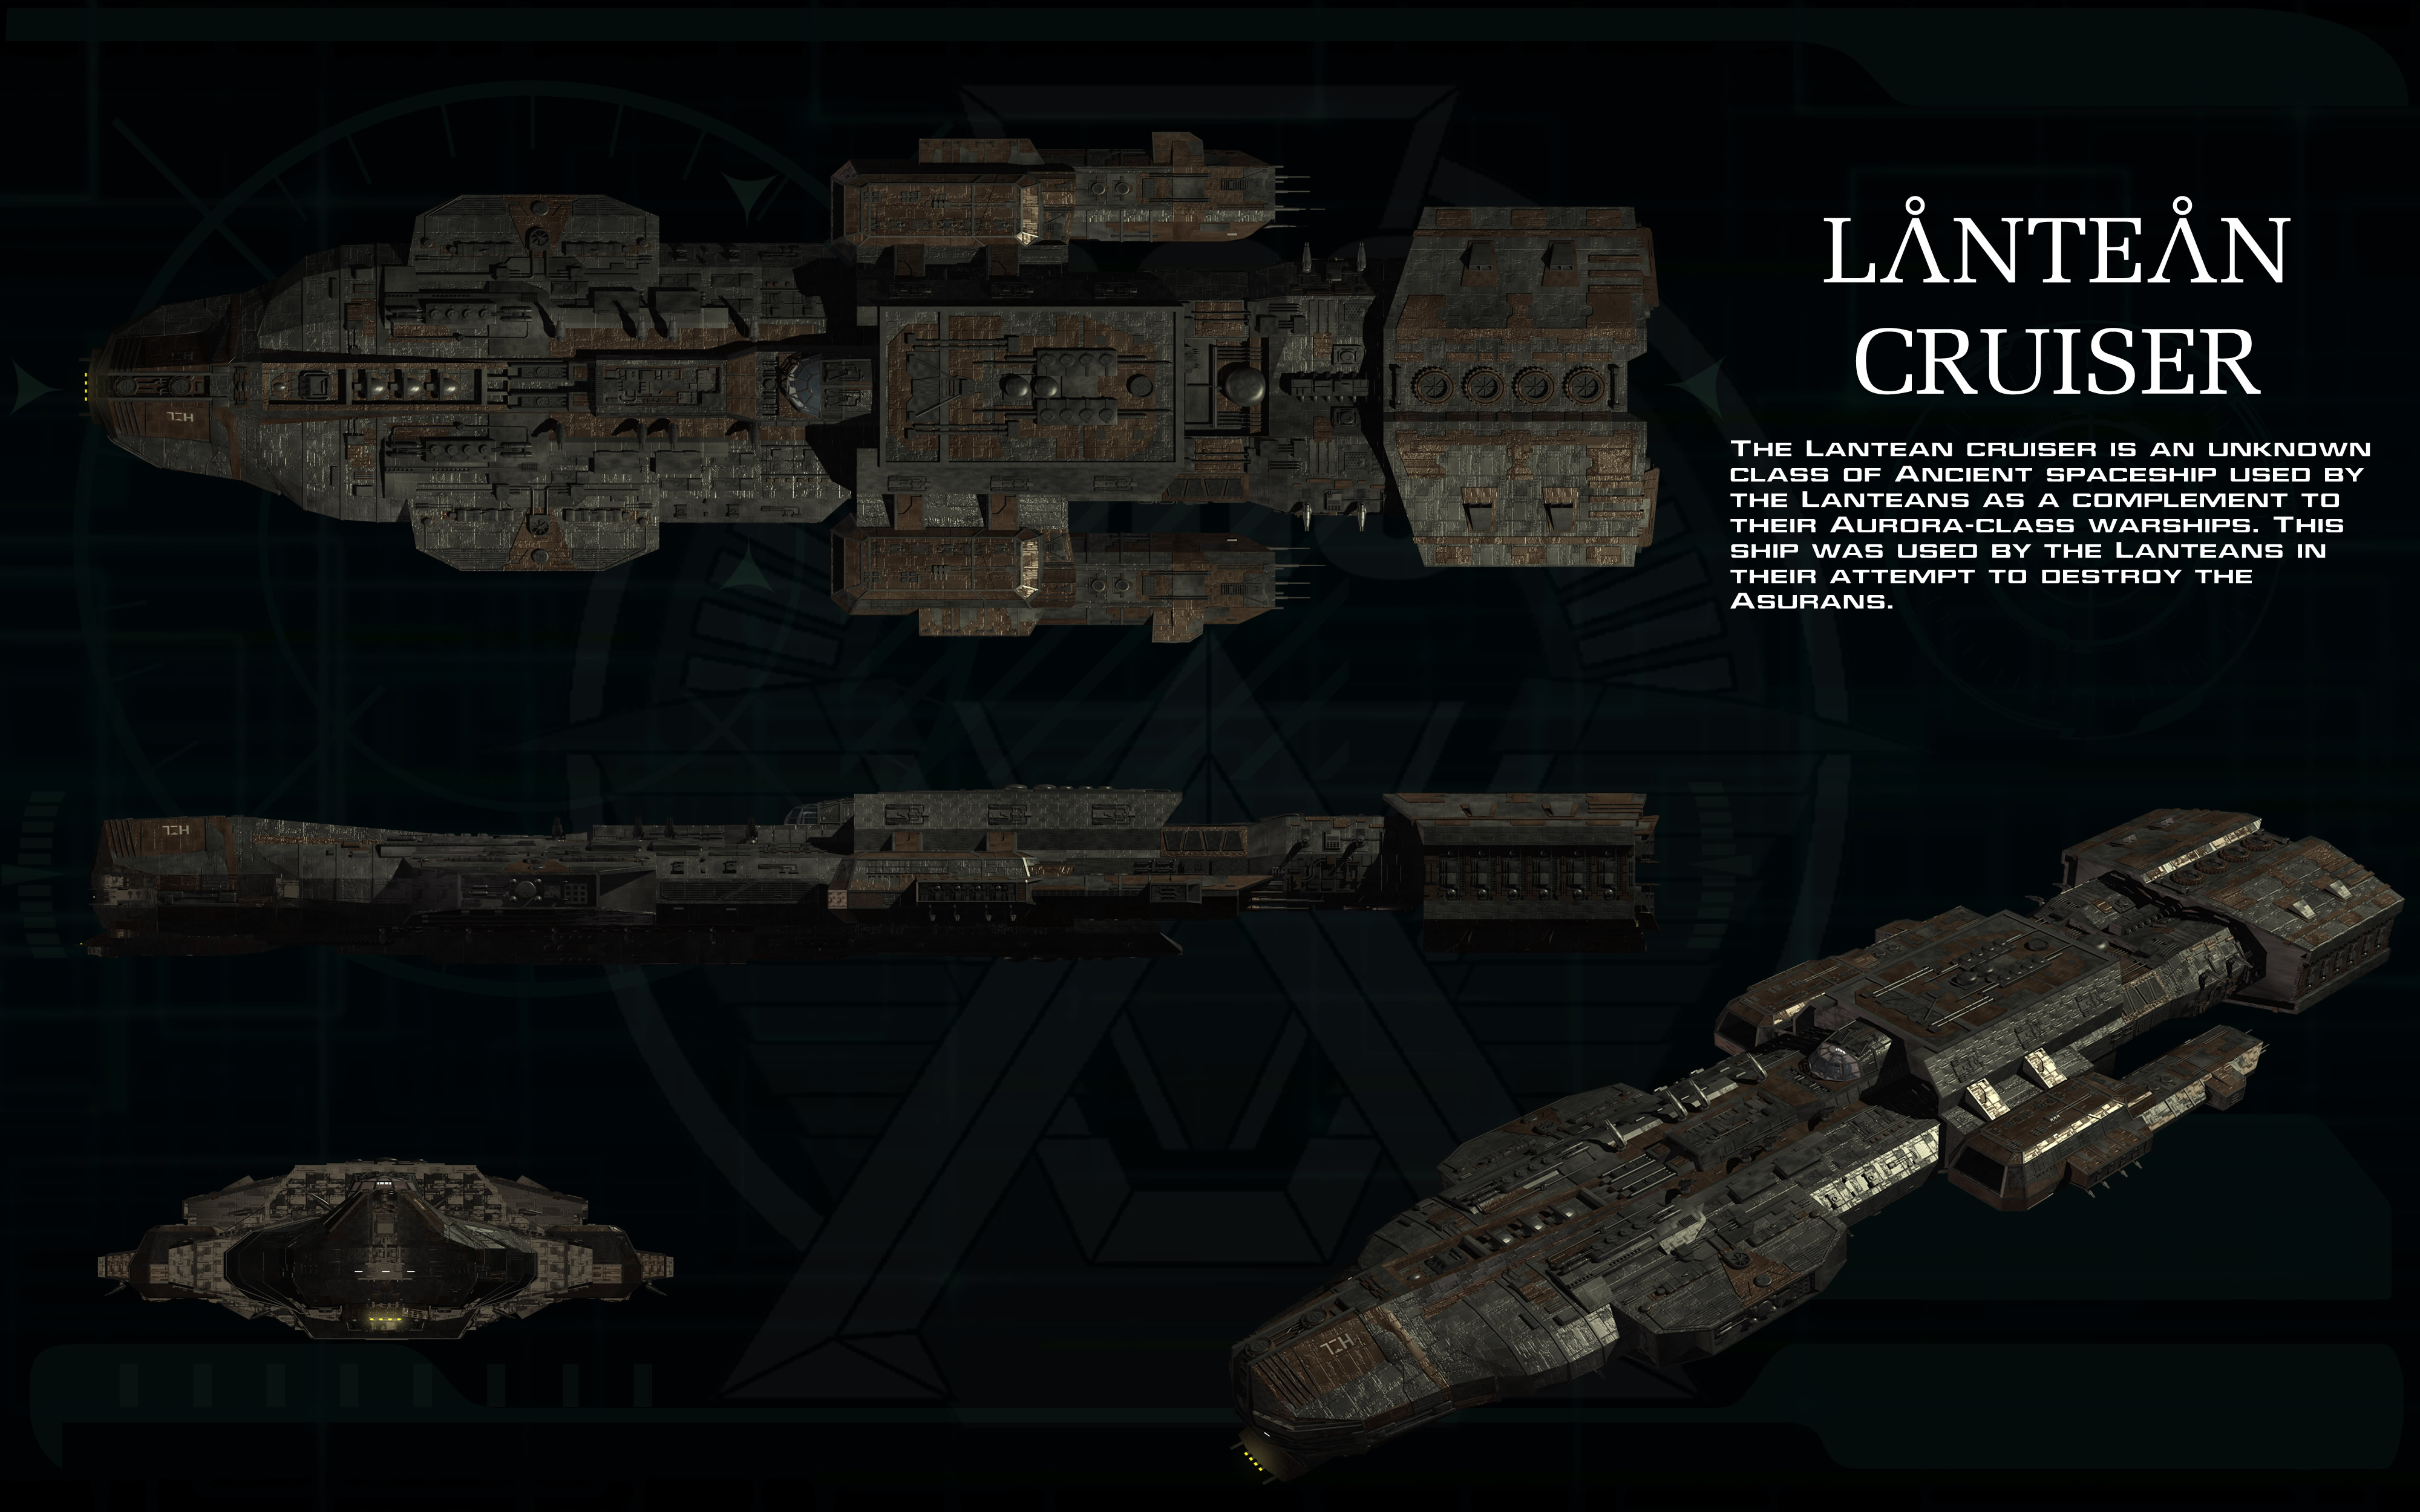 Lantean Cruiser ortho by unusualsuspex